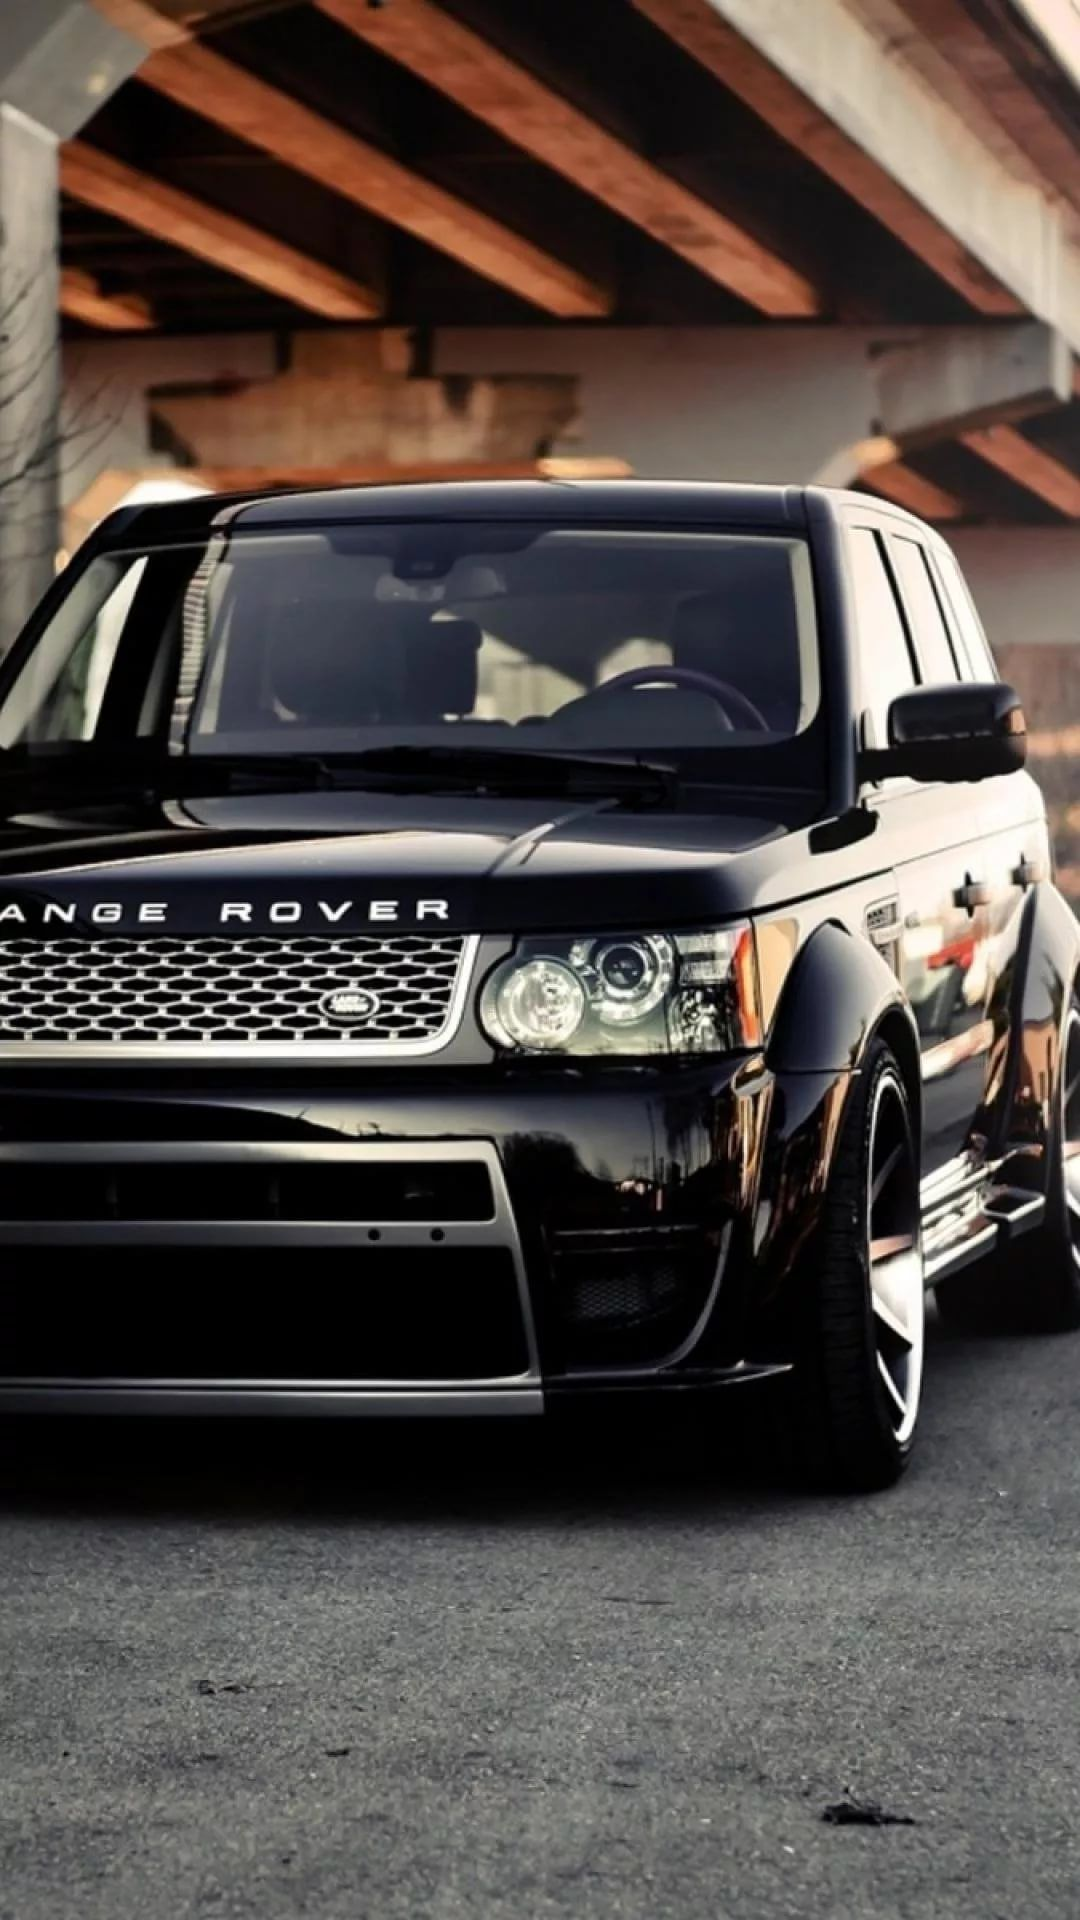 Range Rover s7 wallpaper